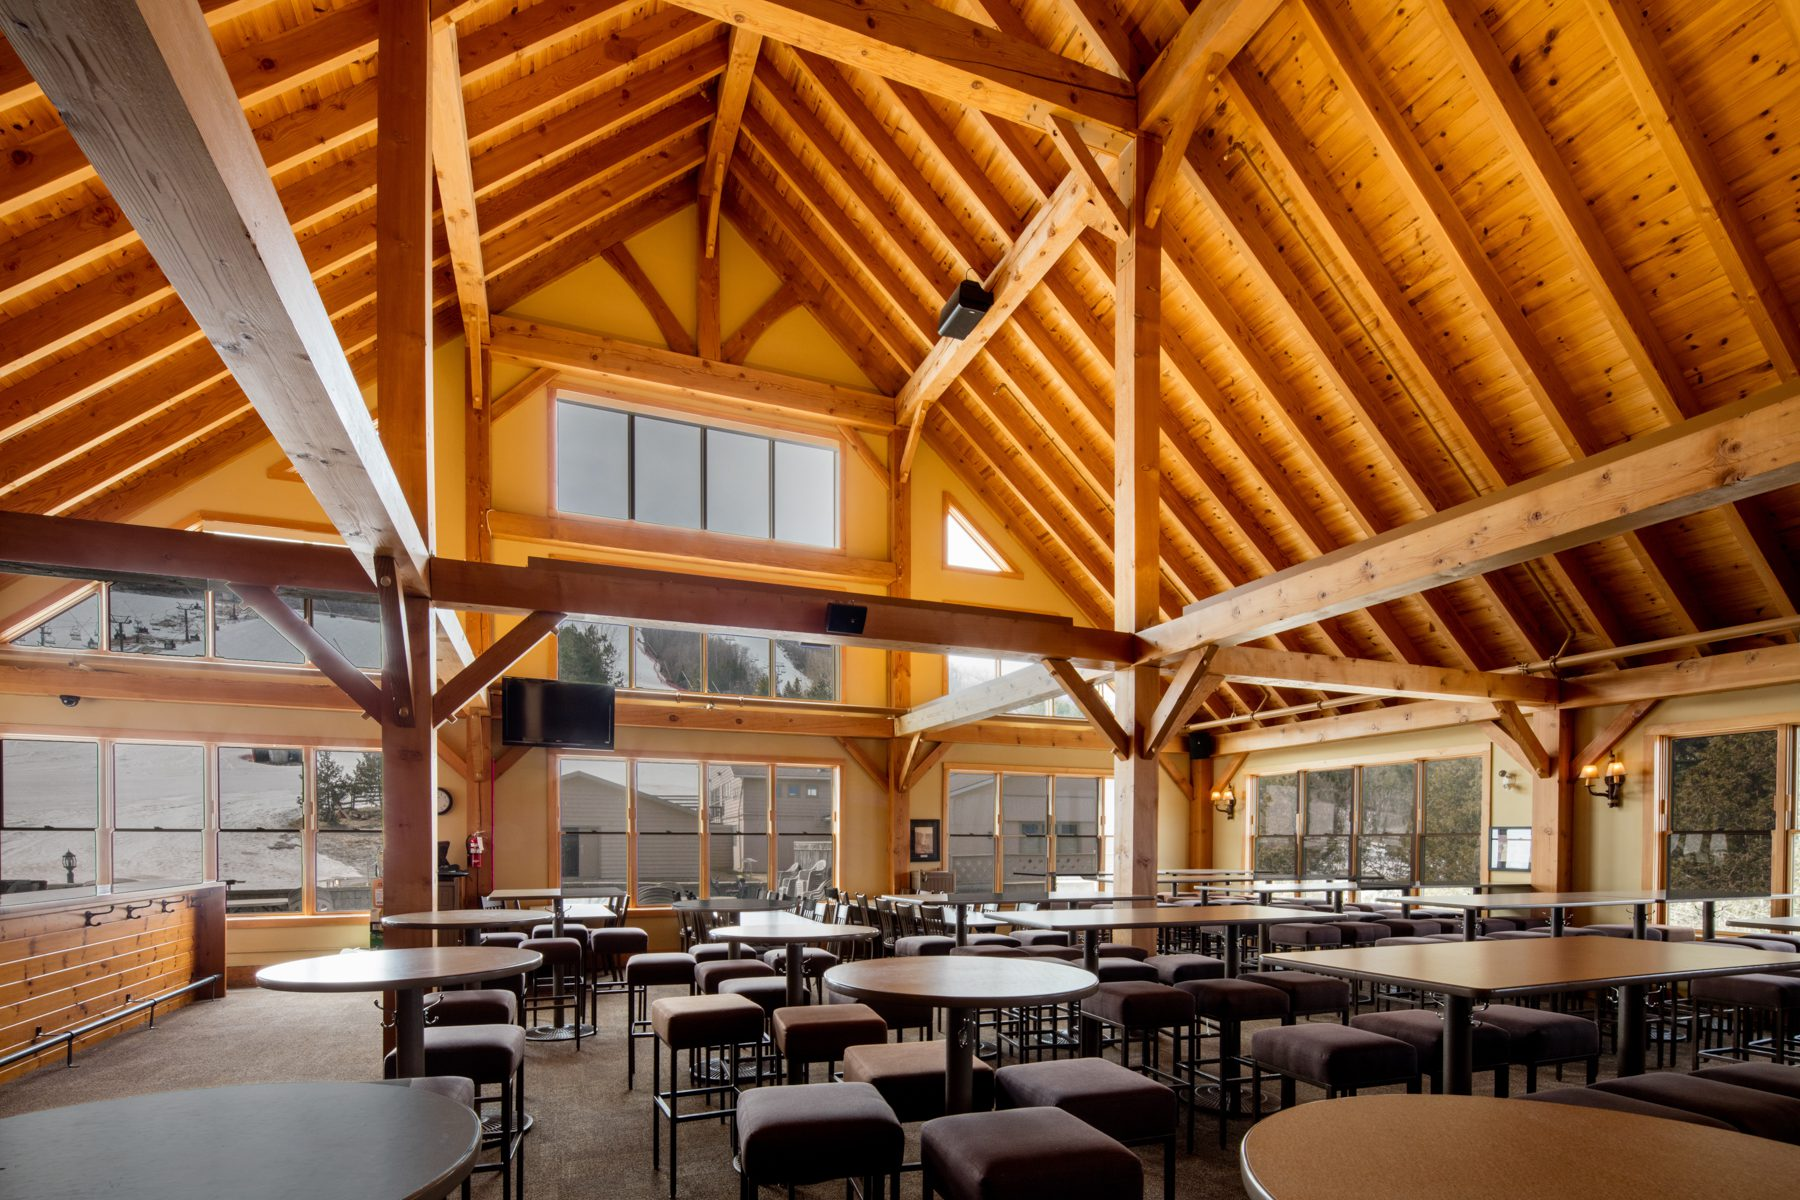 Normerica Timber Frame, Commercial Project, Craigleith Ski Club, Ski Resort, Collingwood, Ontario, Interior, Hill View